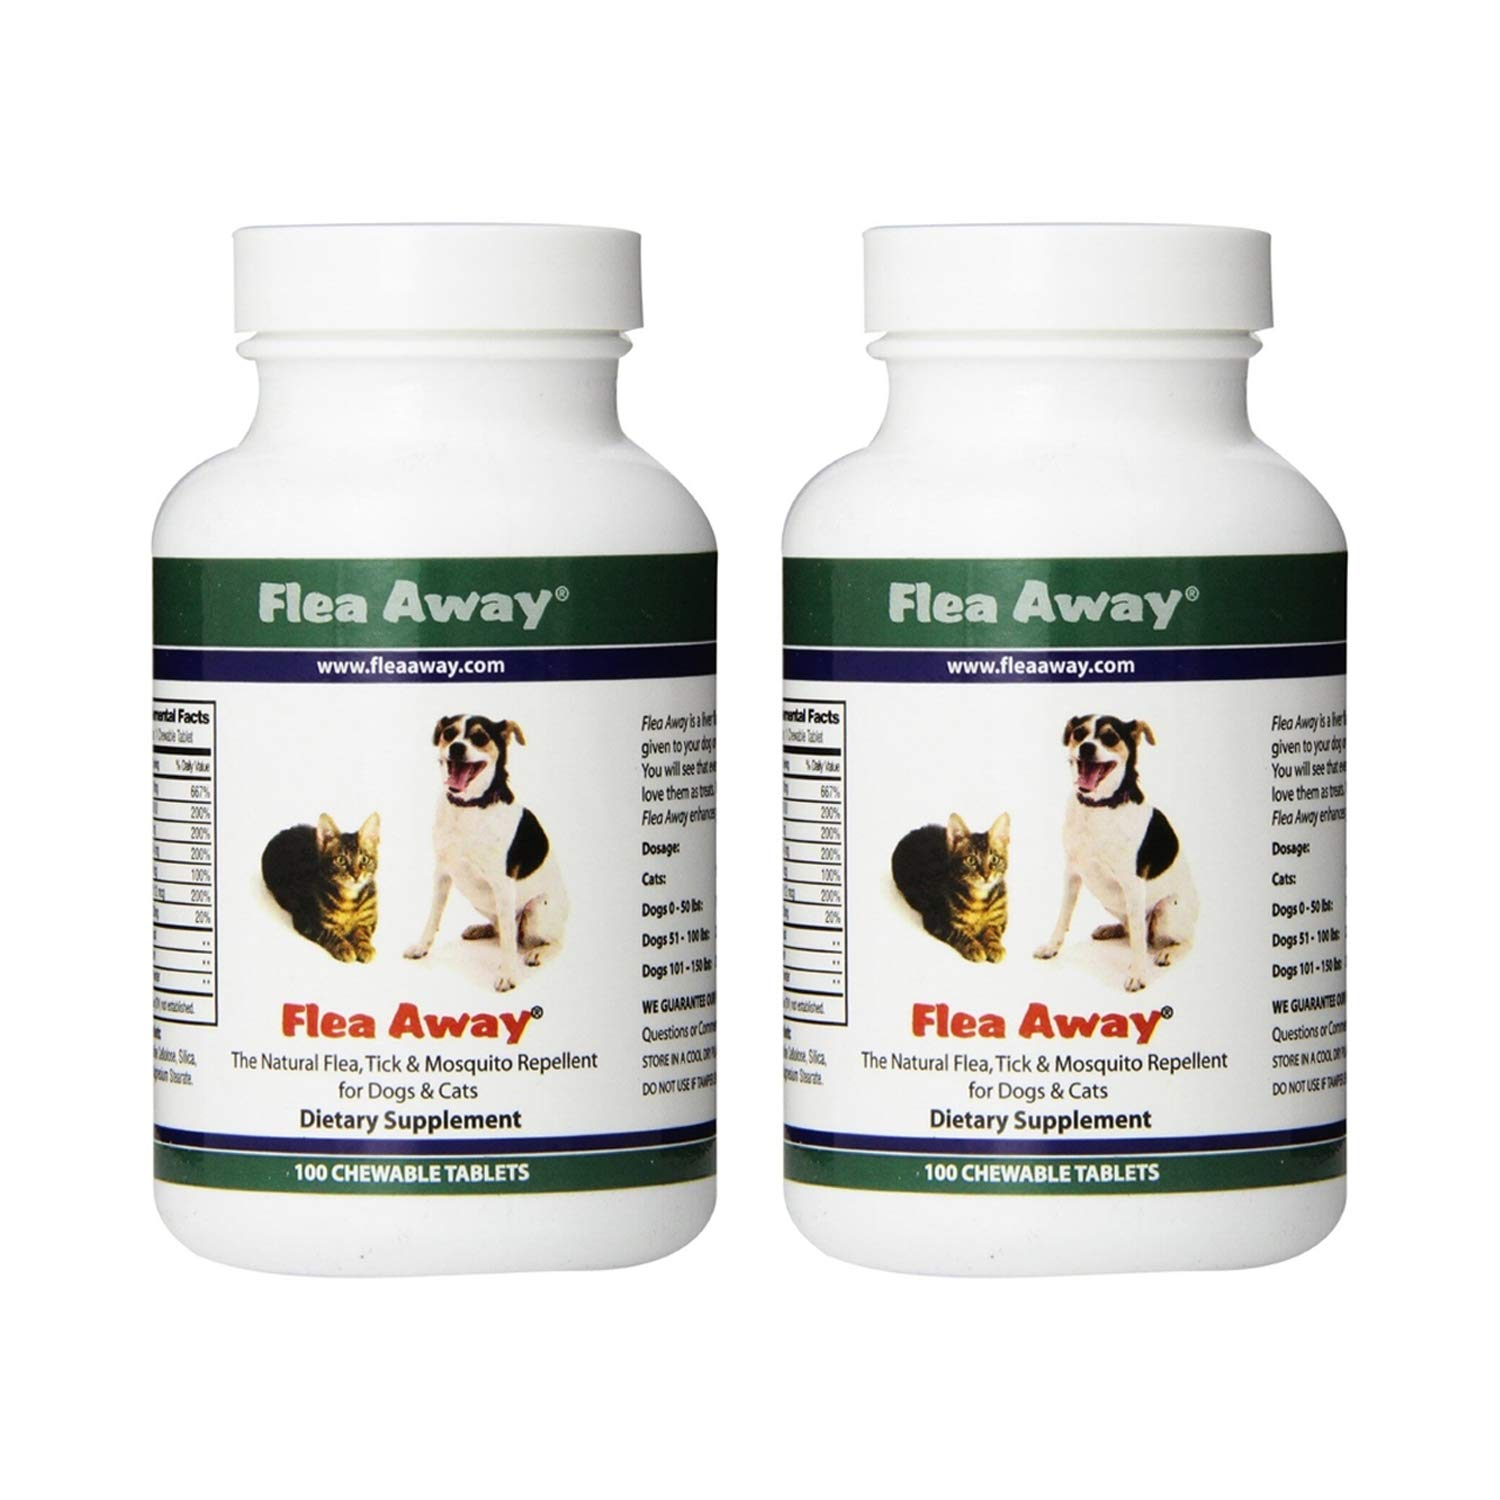 Flea Away All Natural Flea, Tick, and Mosquito Repellent for Dogs and Cats, 100 Chewable Tablets, 2 Pack by Flea Away